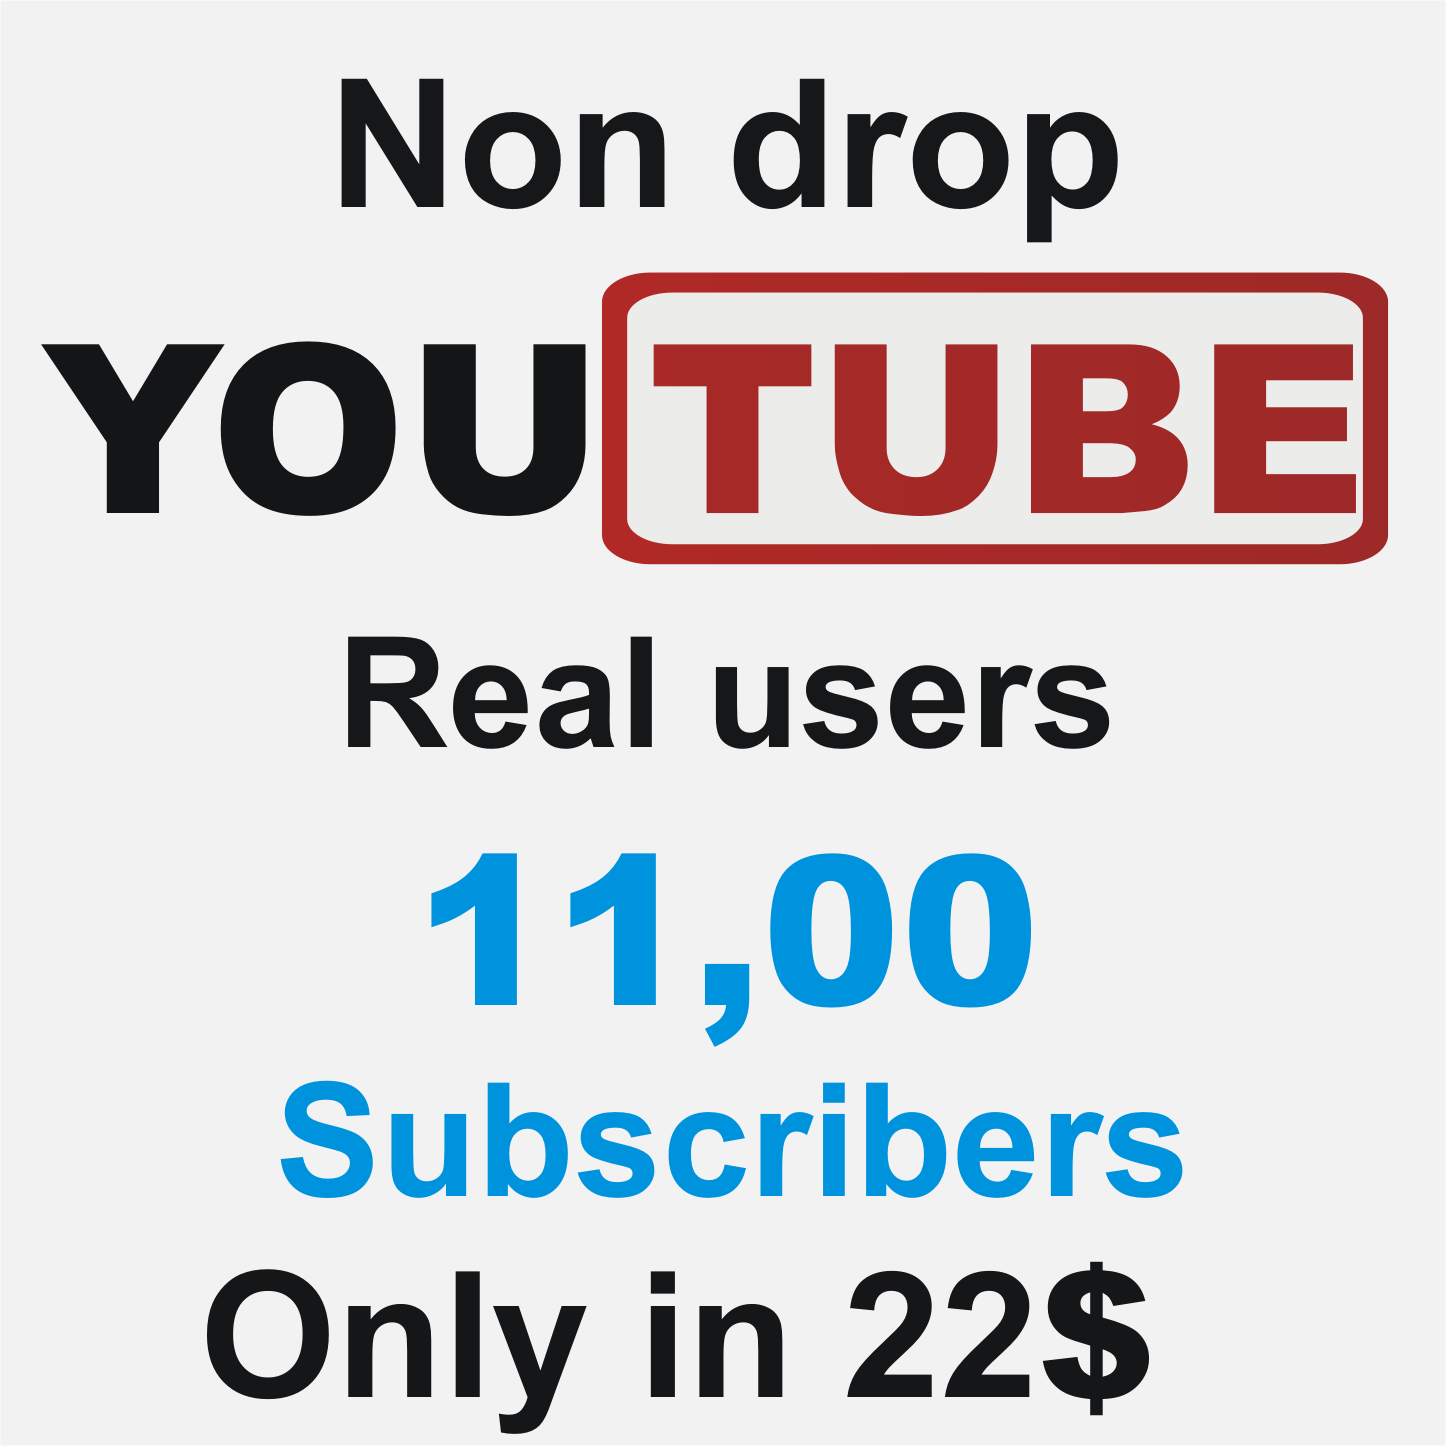 Add 1100 Real Non drop YouTube subscribers